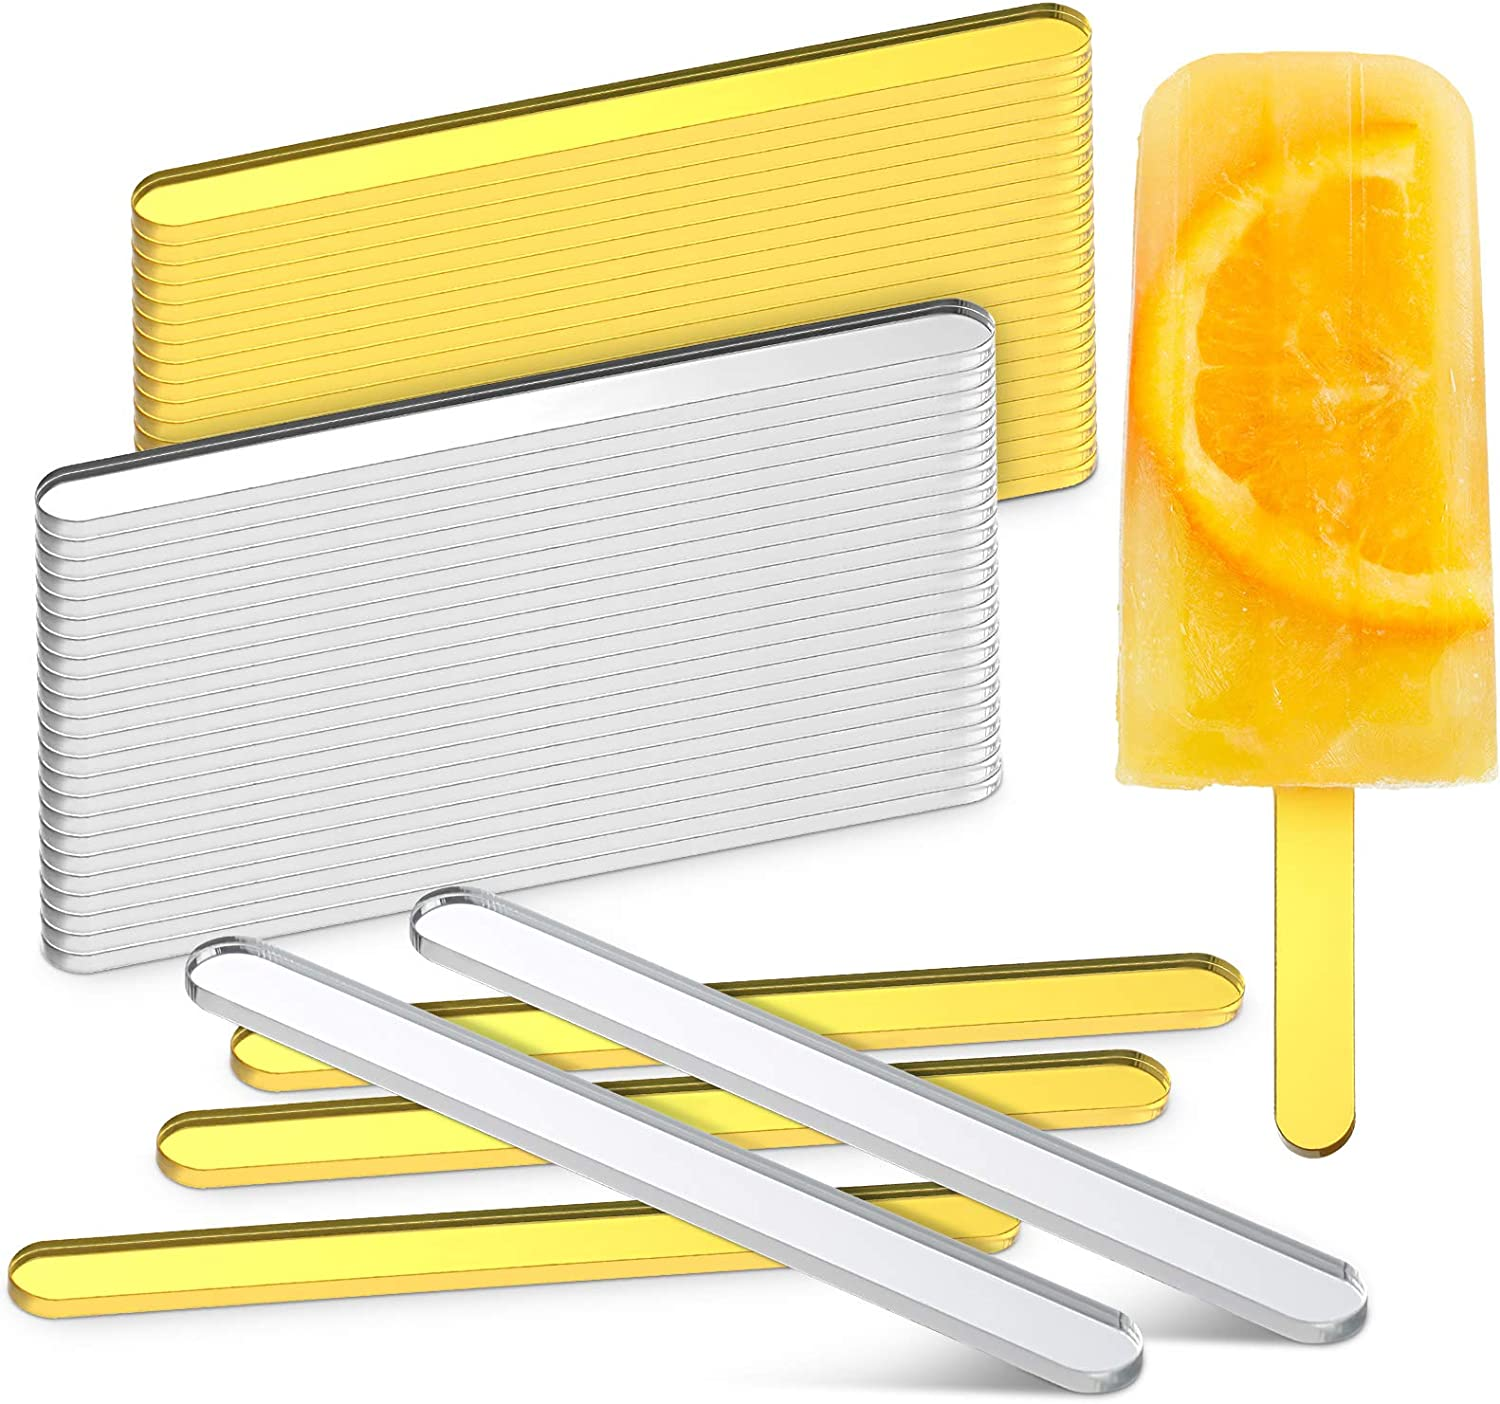 50 Pieces Acrylic Cakesicle Popsicle Sticks 4.5 Inch Mirror Popsicle Sticks Reusable Creamsicle Popsicle Sticks Ice Cream Acrylic Popsicle Stick for DIY Crafts, Party Favor, Gold and Silver